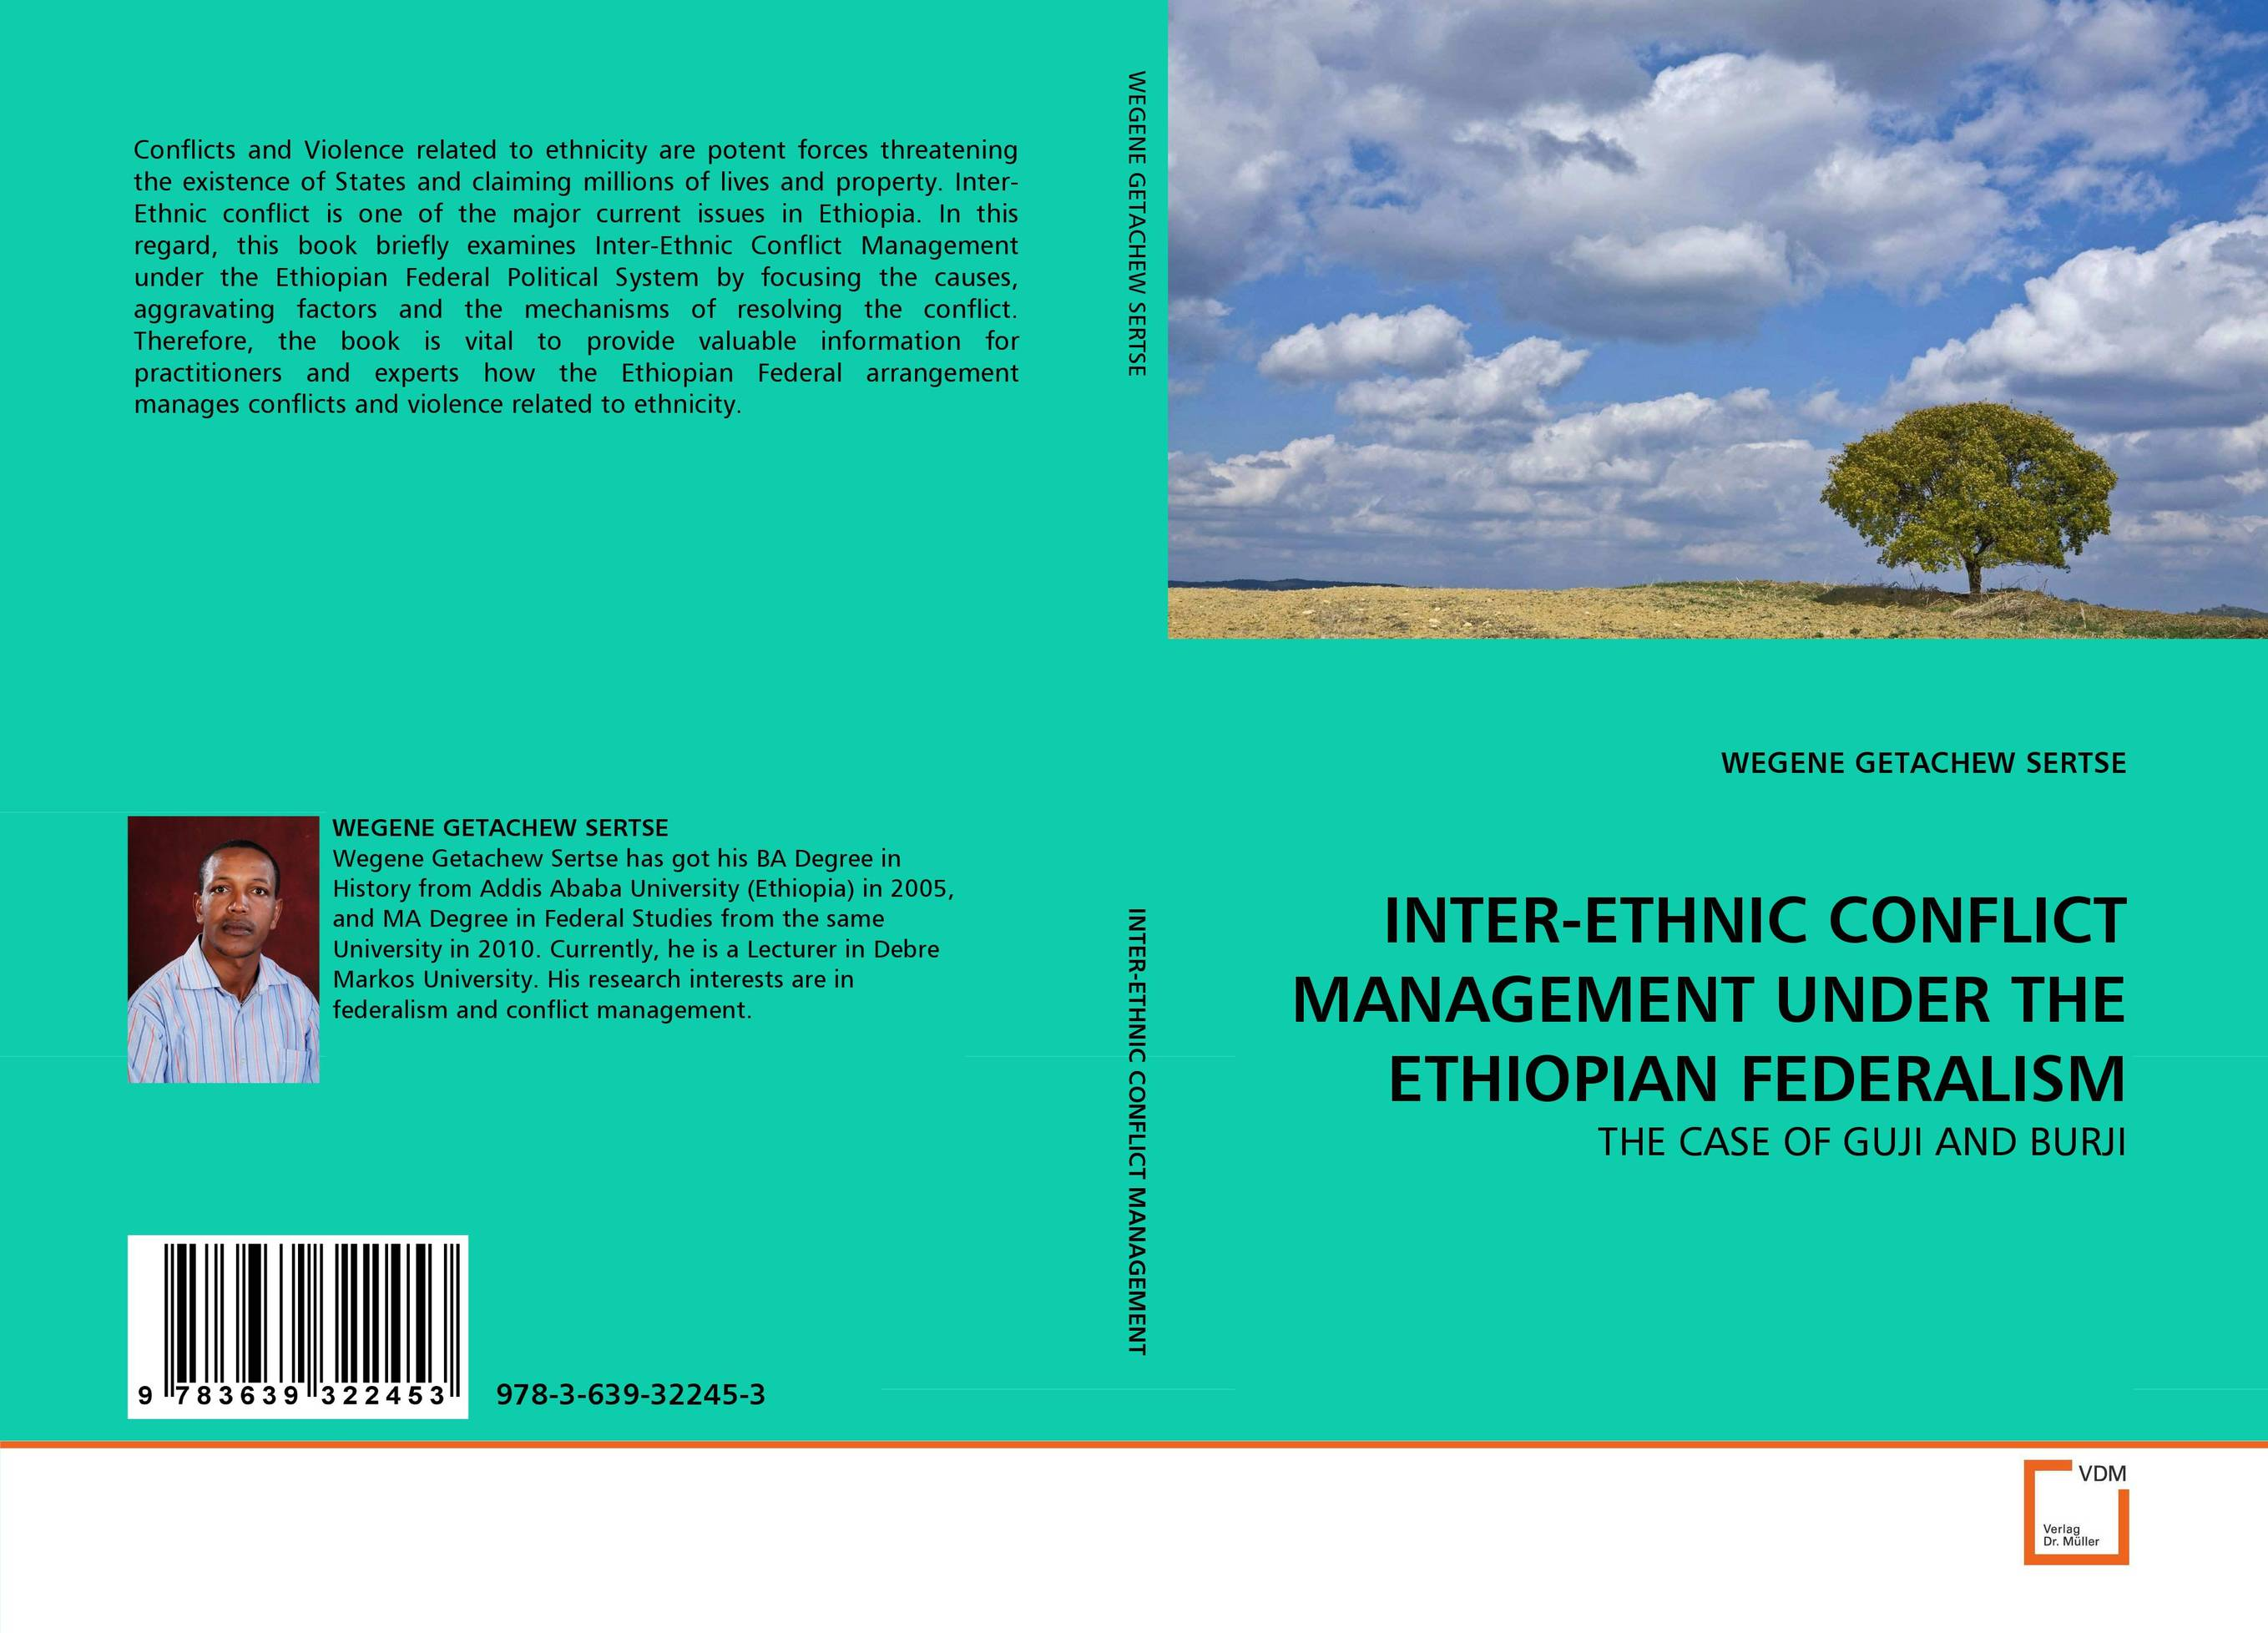 INTER-ETHNIC CONFLICT MANAGEMENT UNDER THE ETHIOPIAN FEDERALISM trans border ethnic hegemony and political conflict in africa